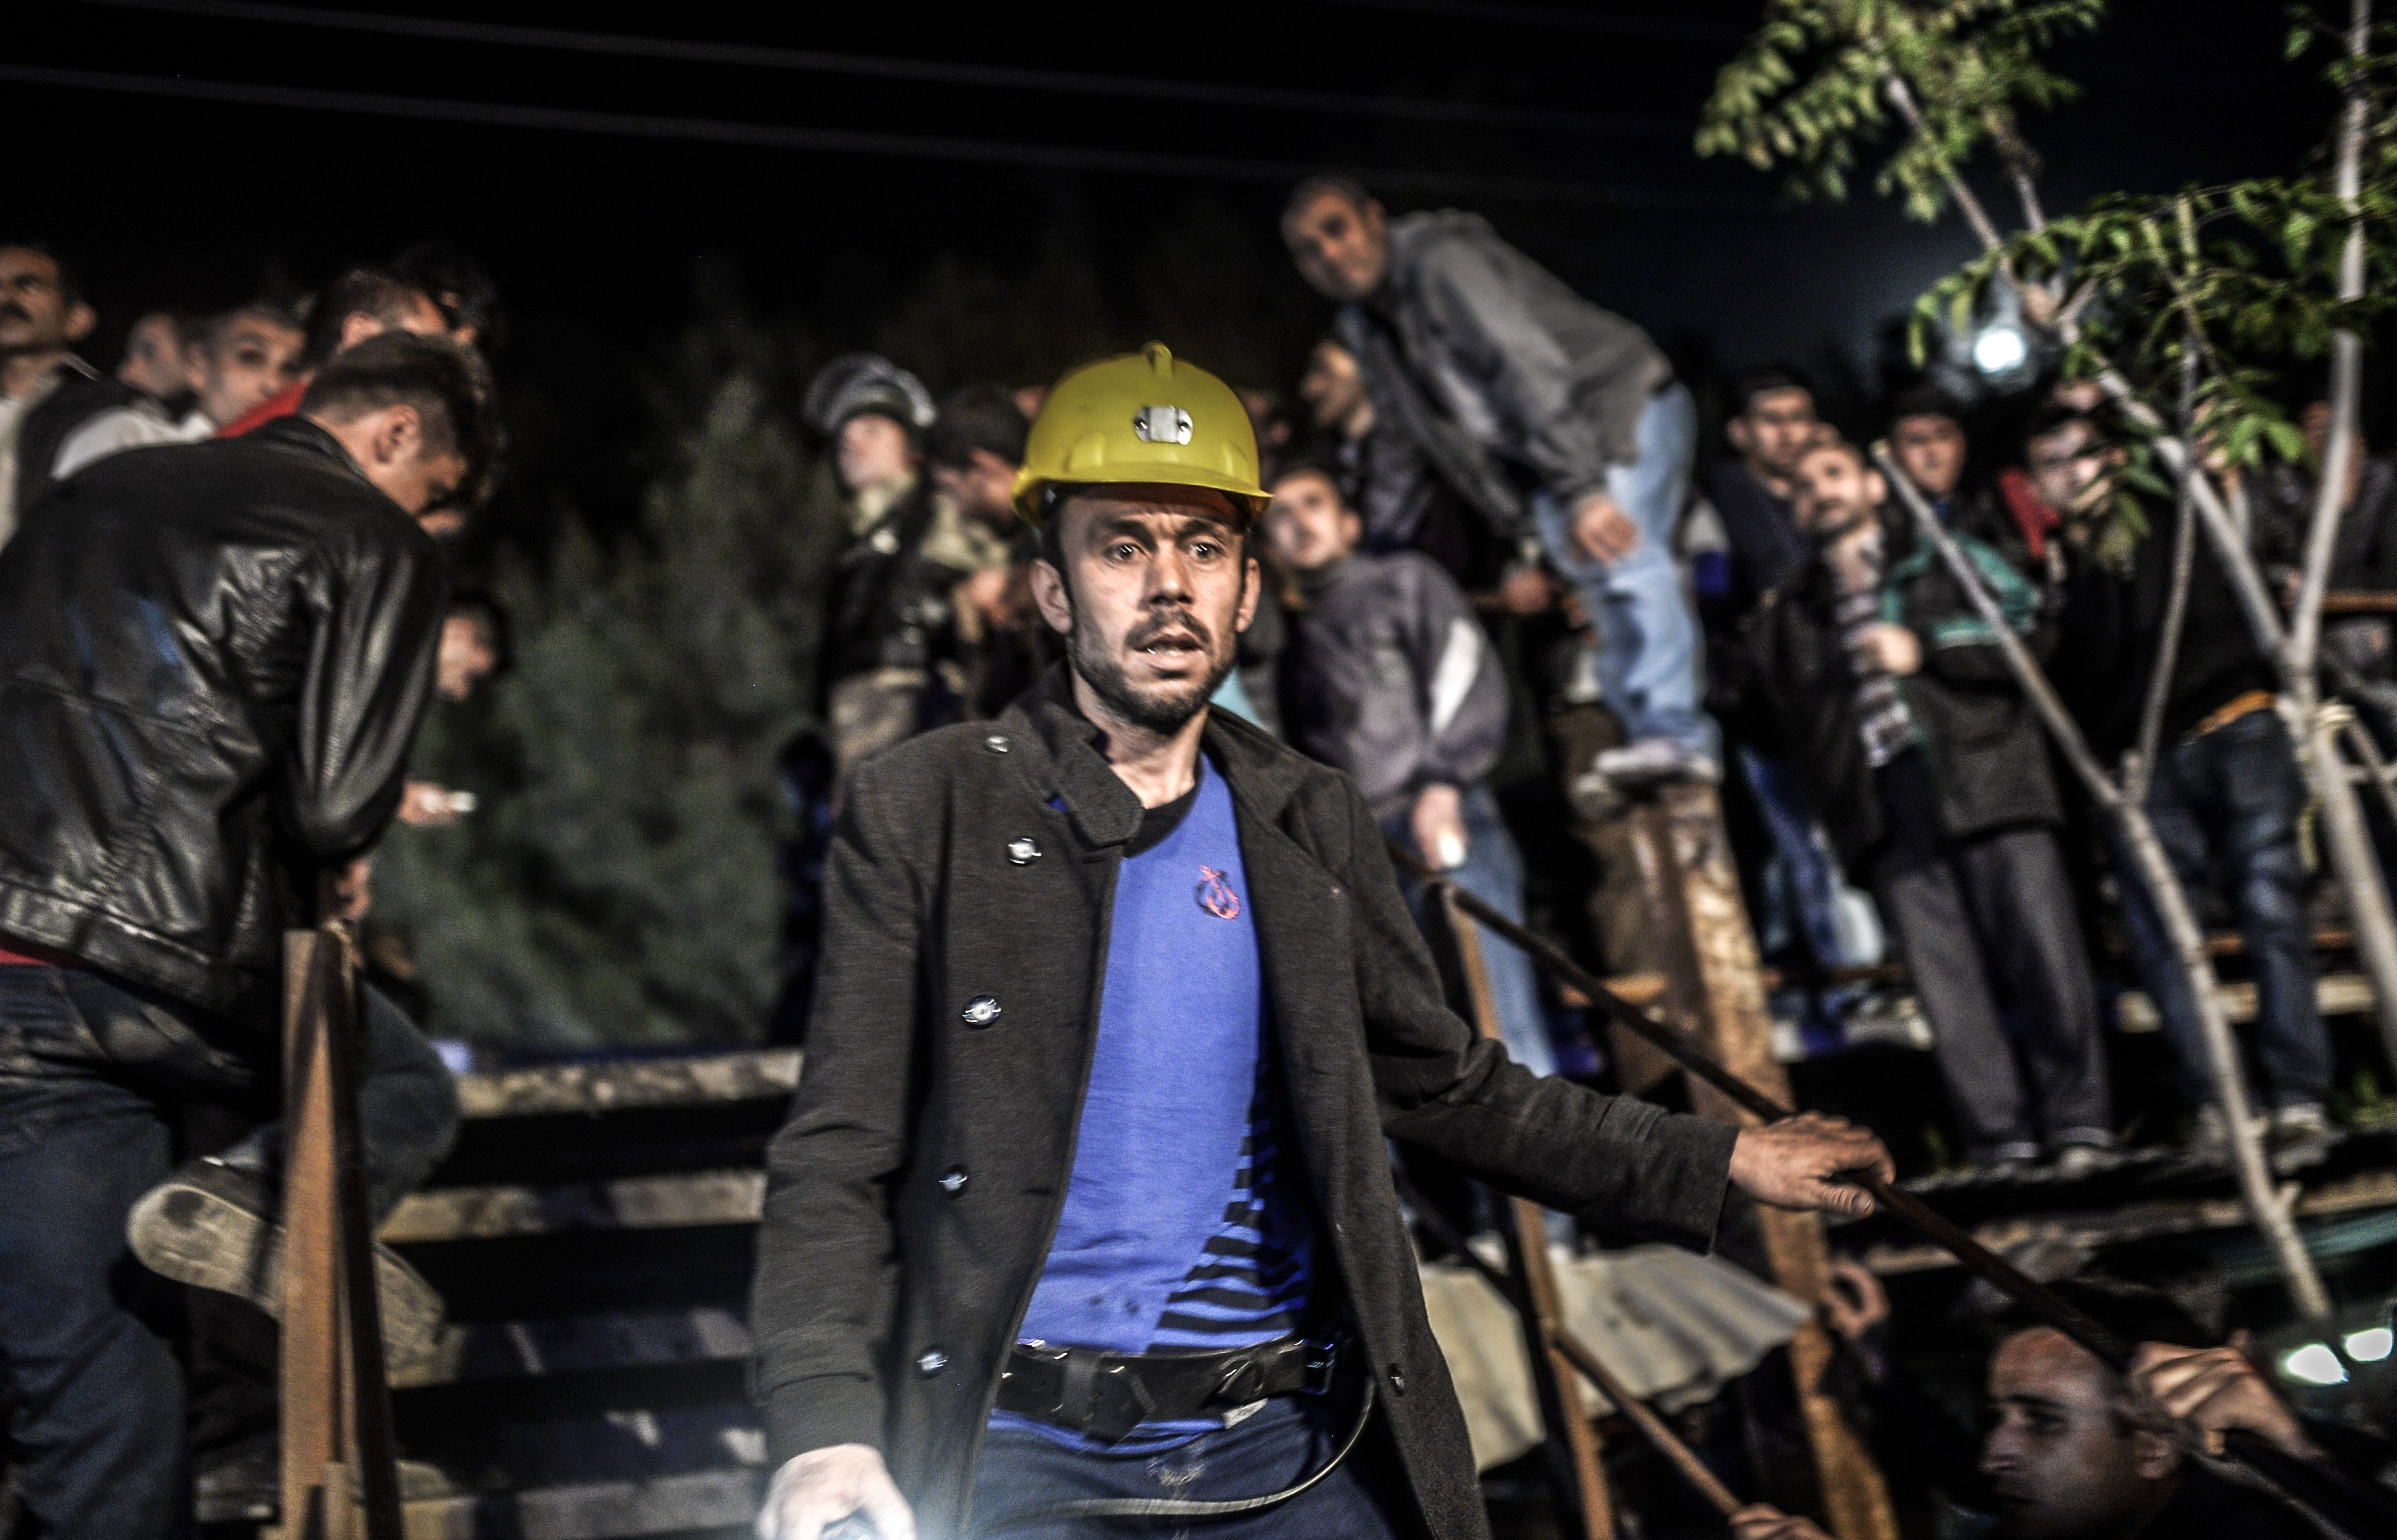 Miners wait at the gate of a mine after an explosion in Manisa on May 13, 2014.